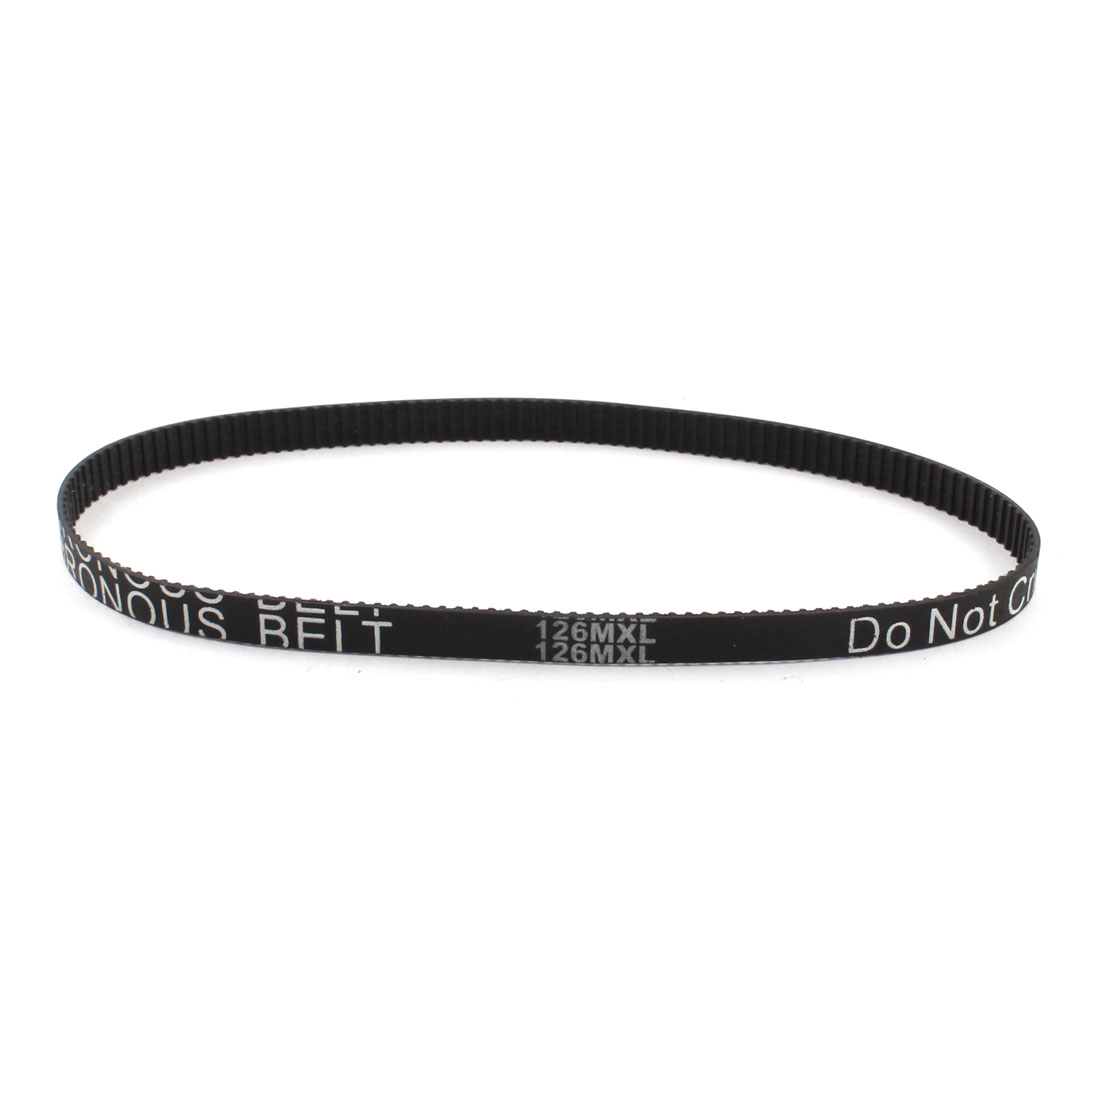 126MXL025 158-Tooth 6.4mm Width Black Industrial Stepper Motor 3D Printer Groove Synchronous Timing Belt 12.6""